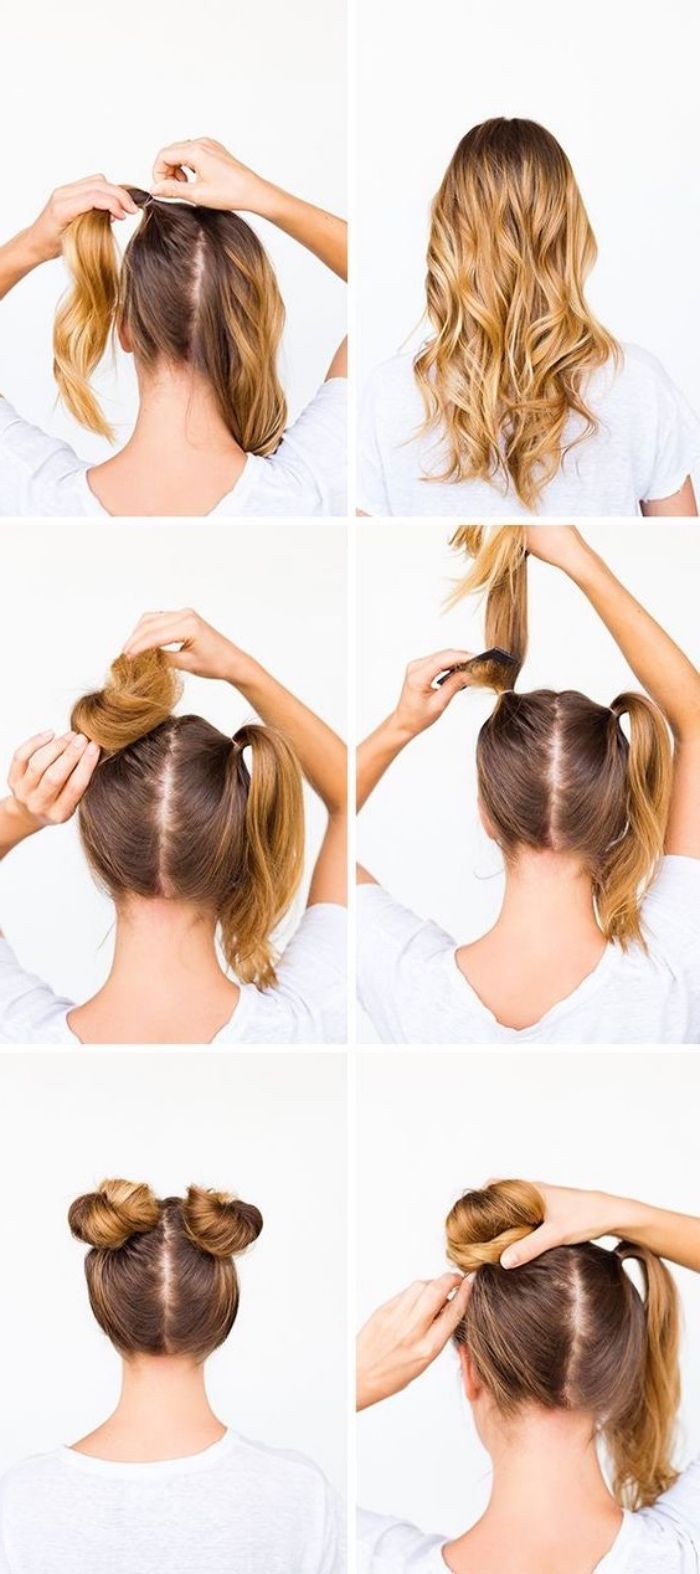 1001 Tutos Et Idees Pour Faire Un Chignon Facile Et Rapide In 2021 Diy Hairstyles Fast Hairstyles Pretty Hairstyles